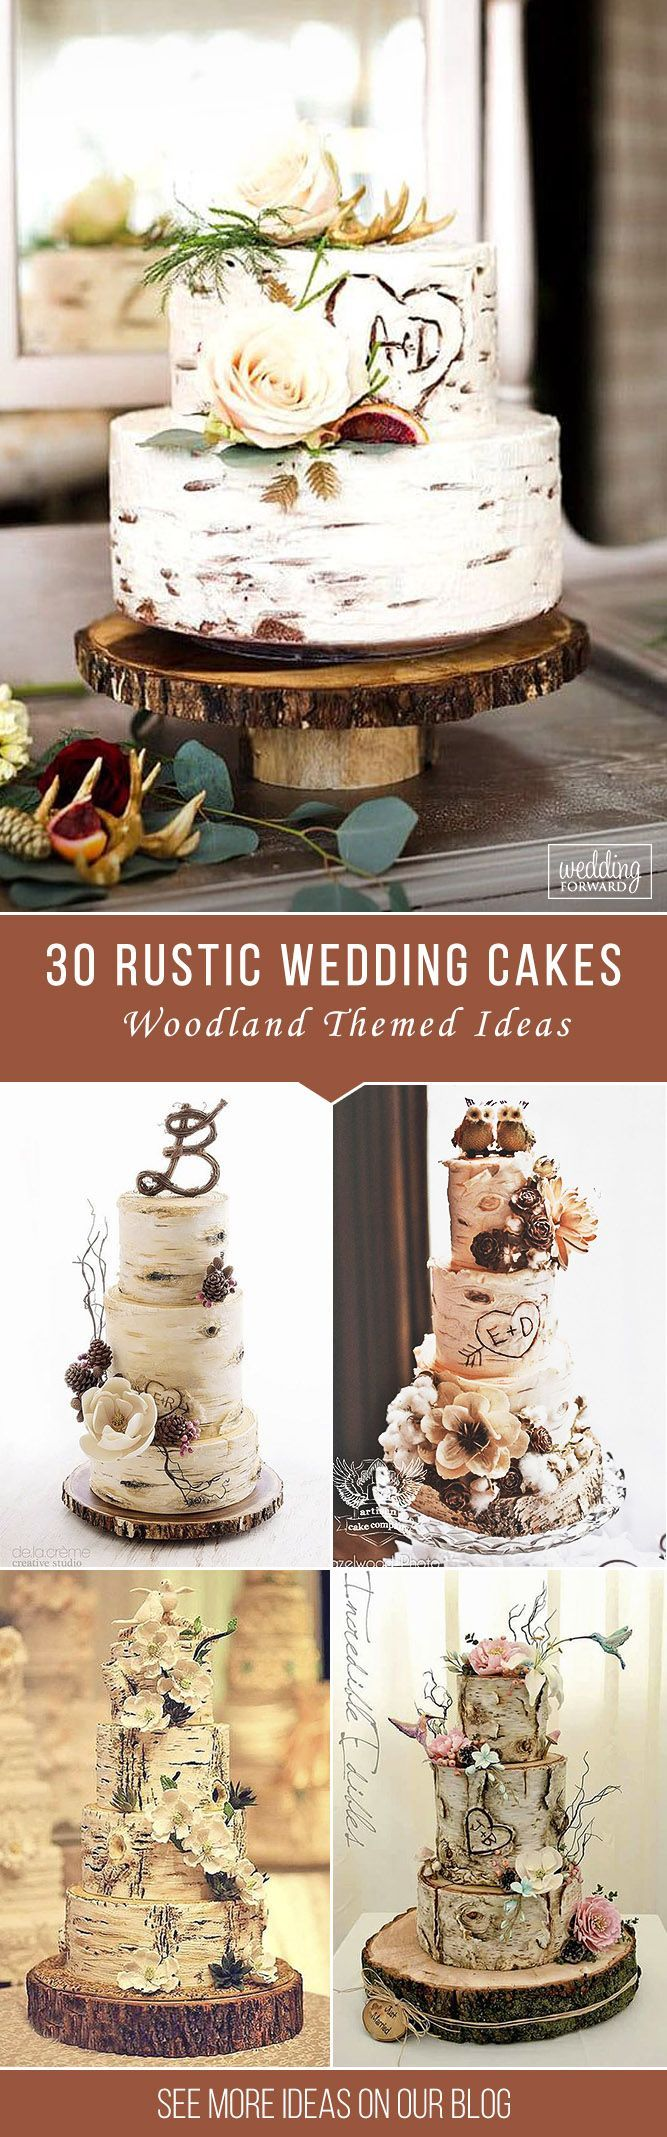 Let them eat cake rustic wedding chic - 30 Must See Rustic Woodland Themed Wedding Cakes